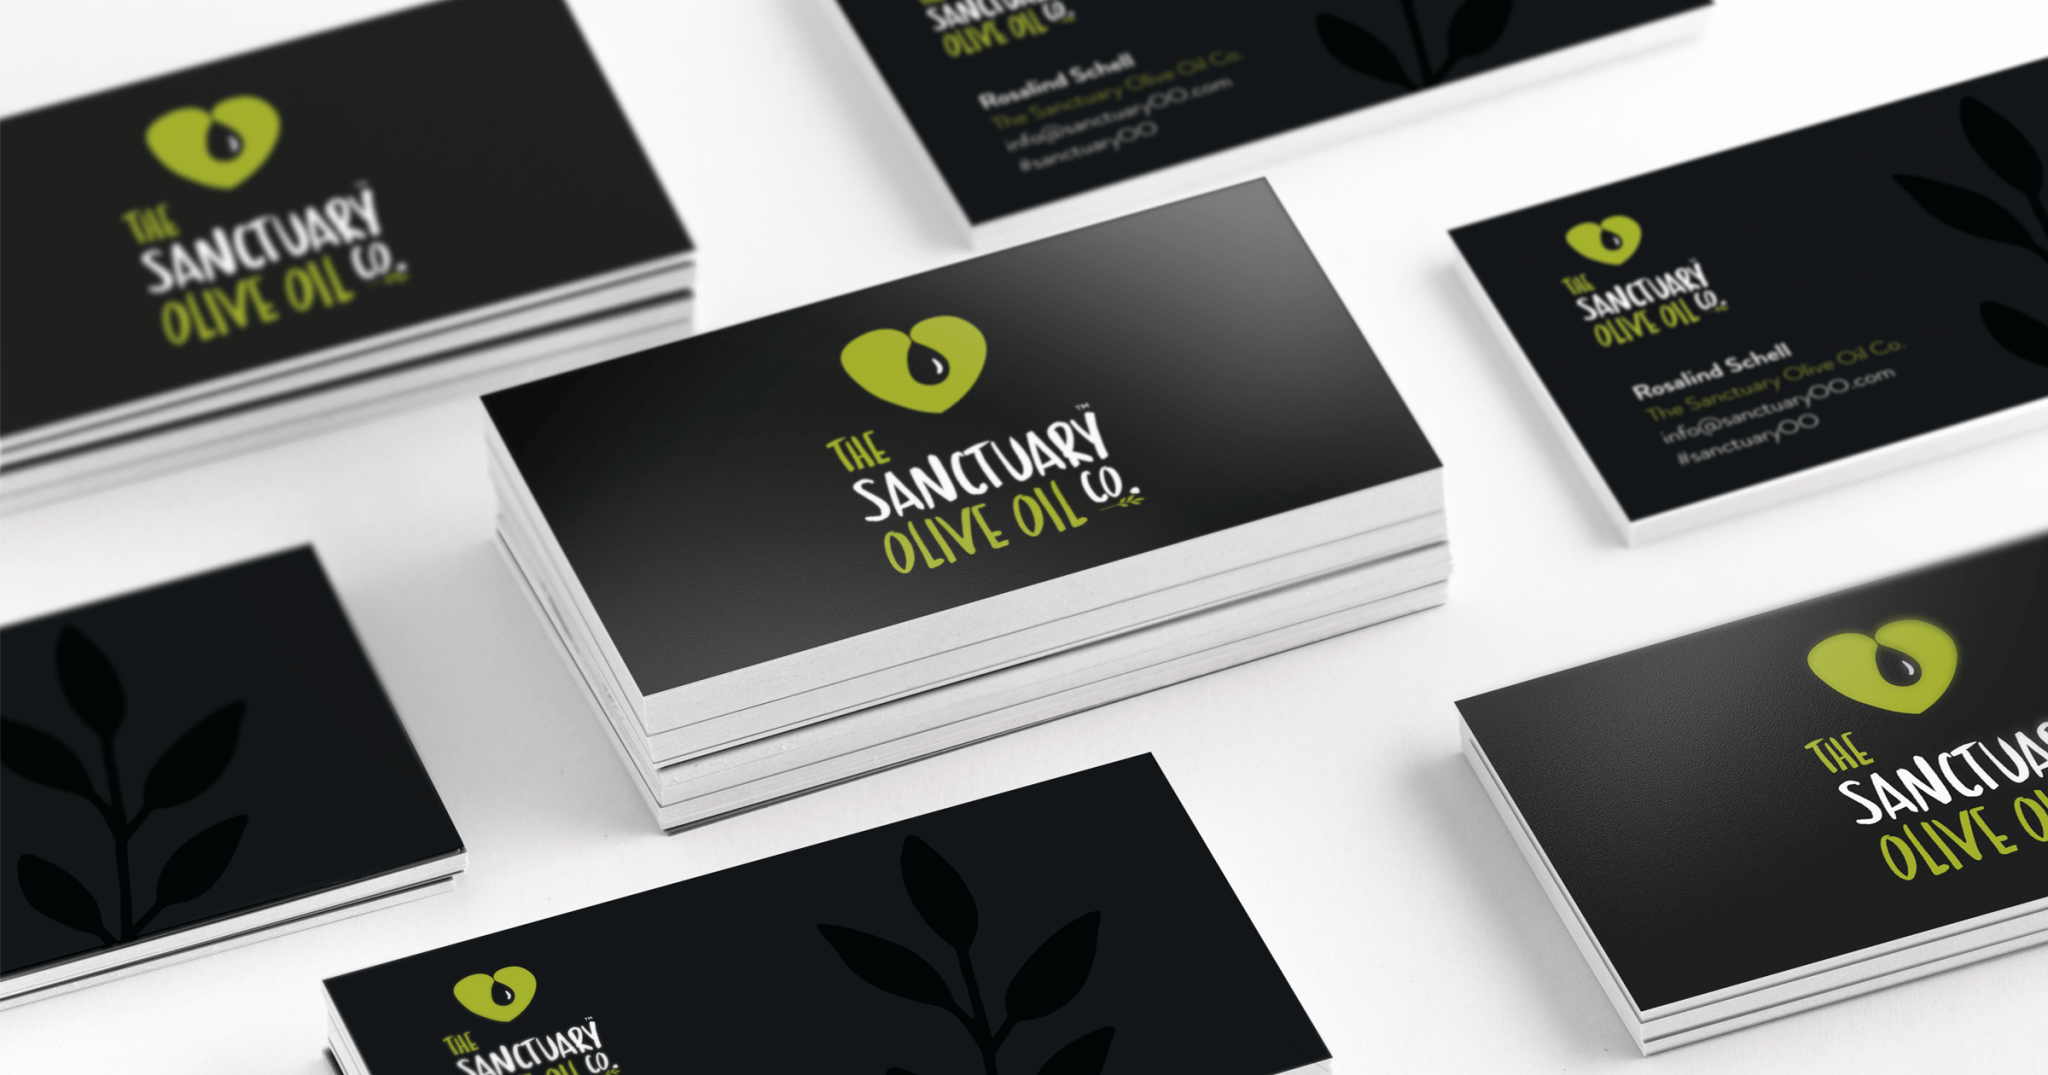 The Sanctuary Olive Oil Co. business cards